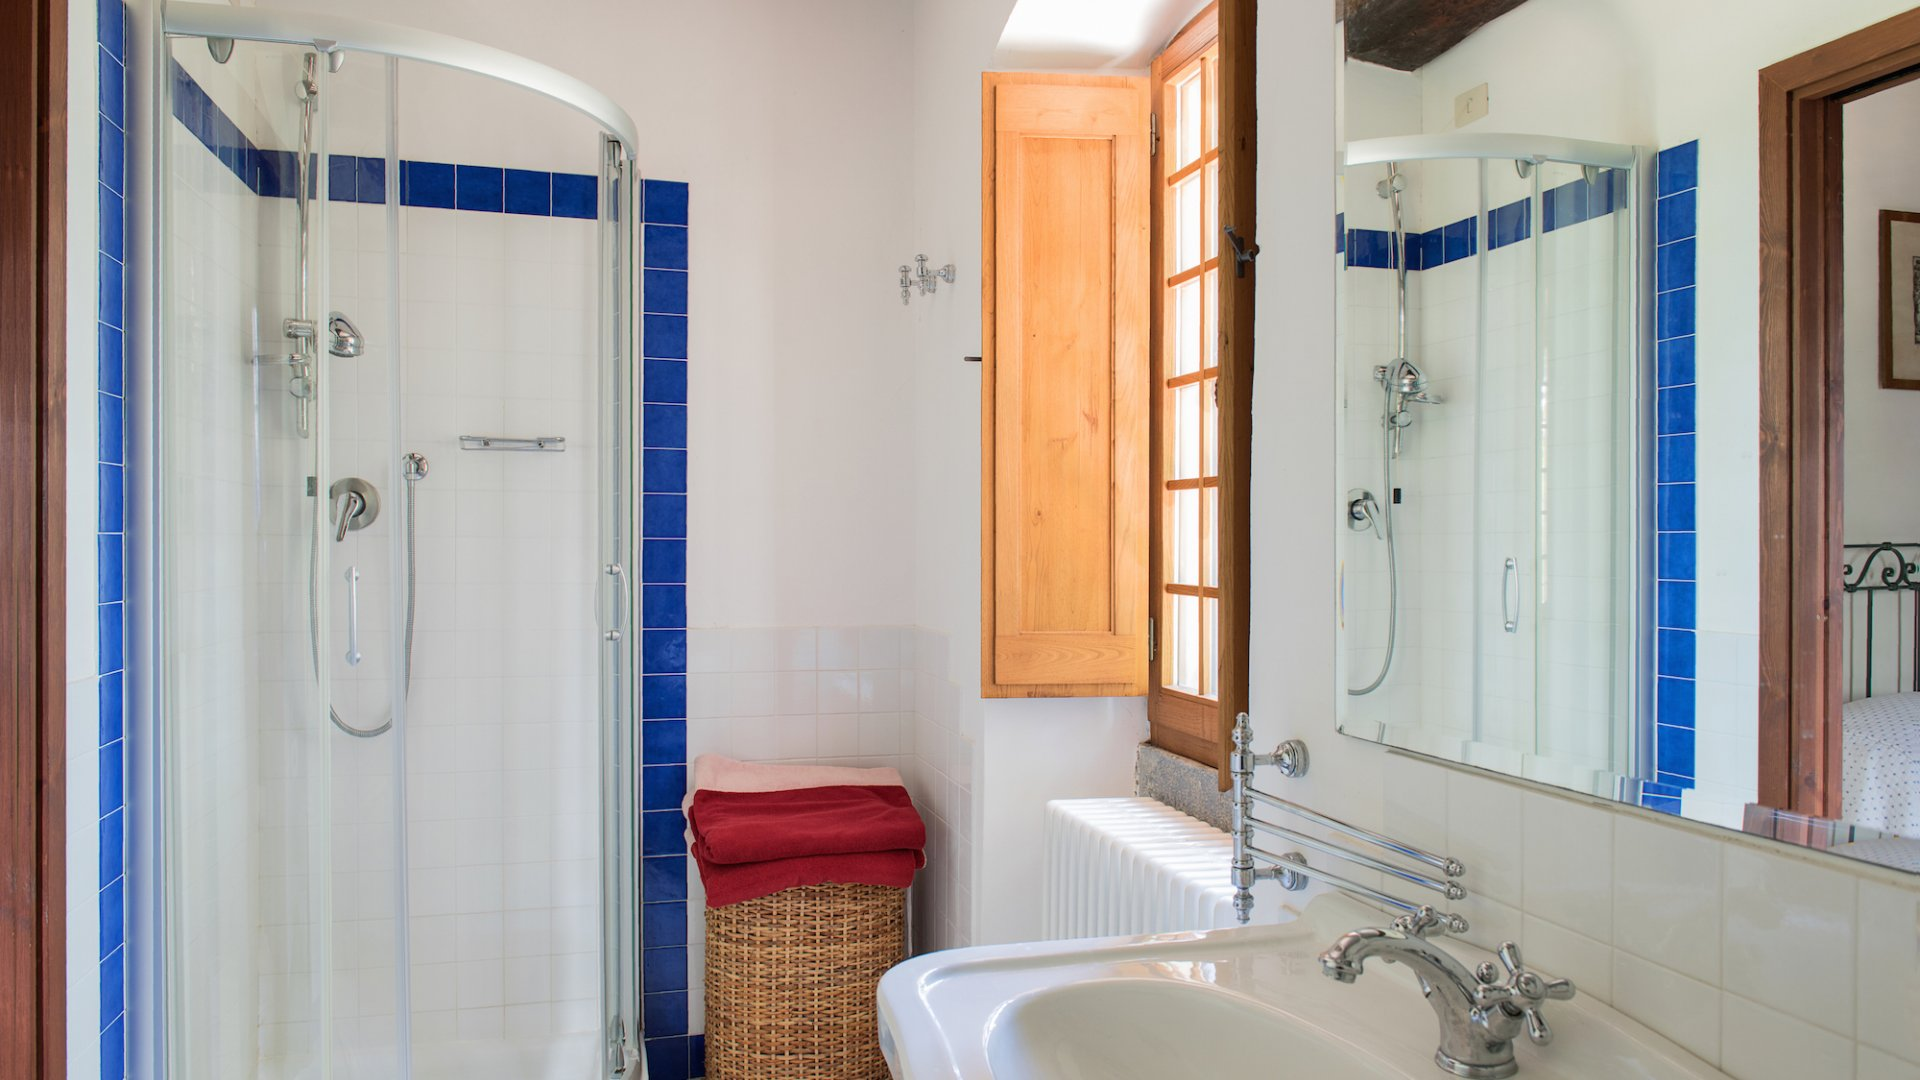 en suite bathroom of bedroom n. 8